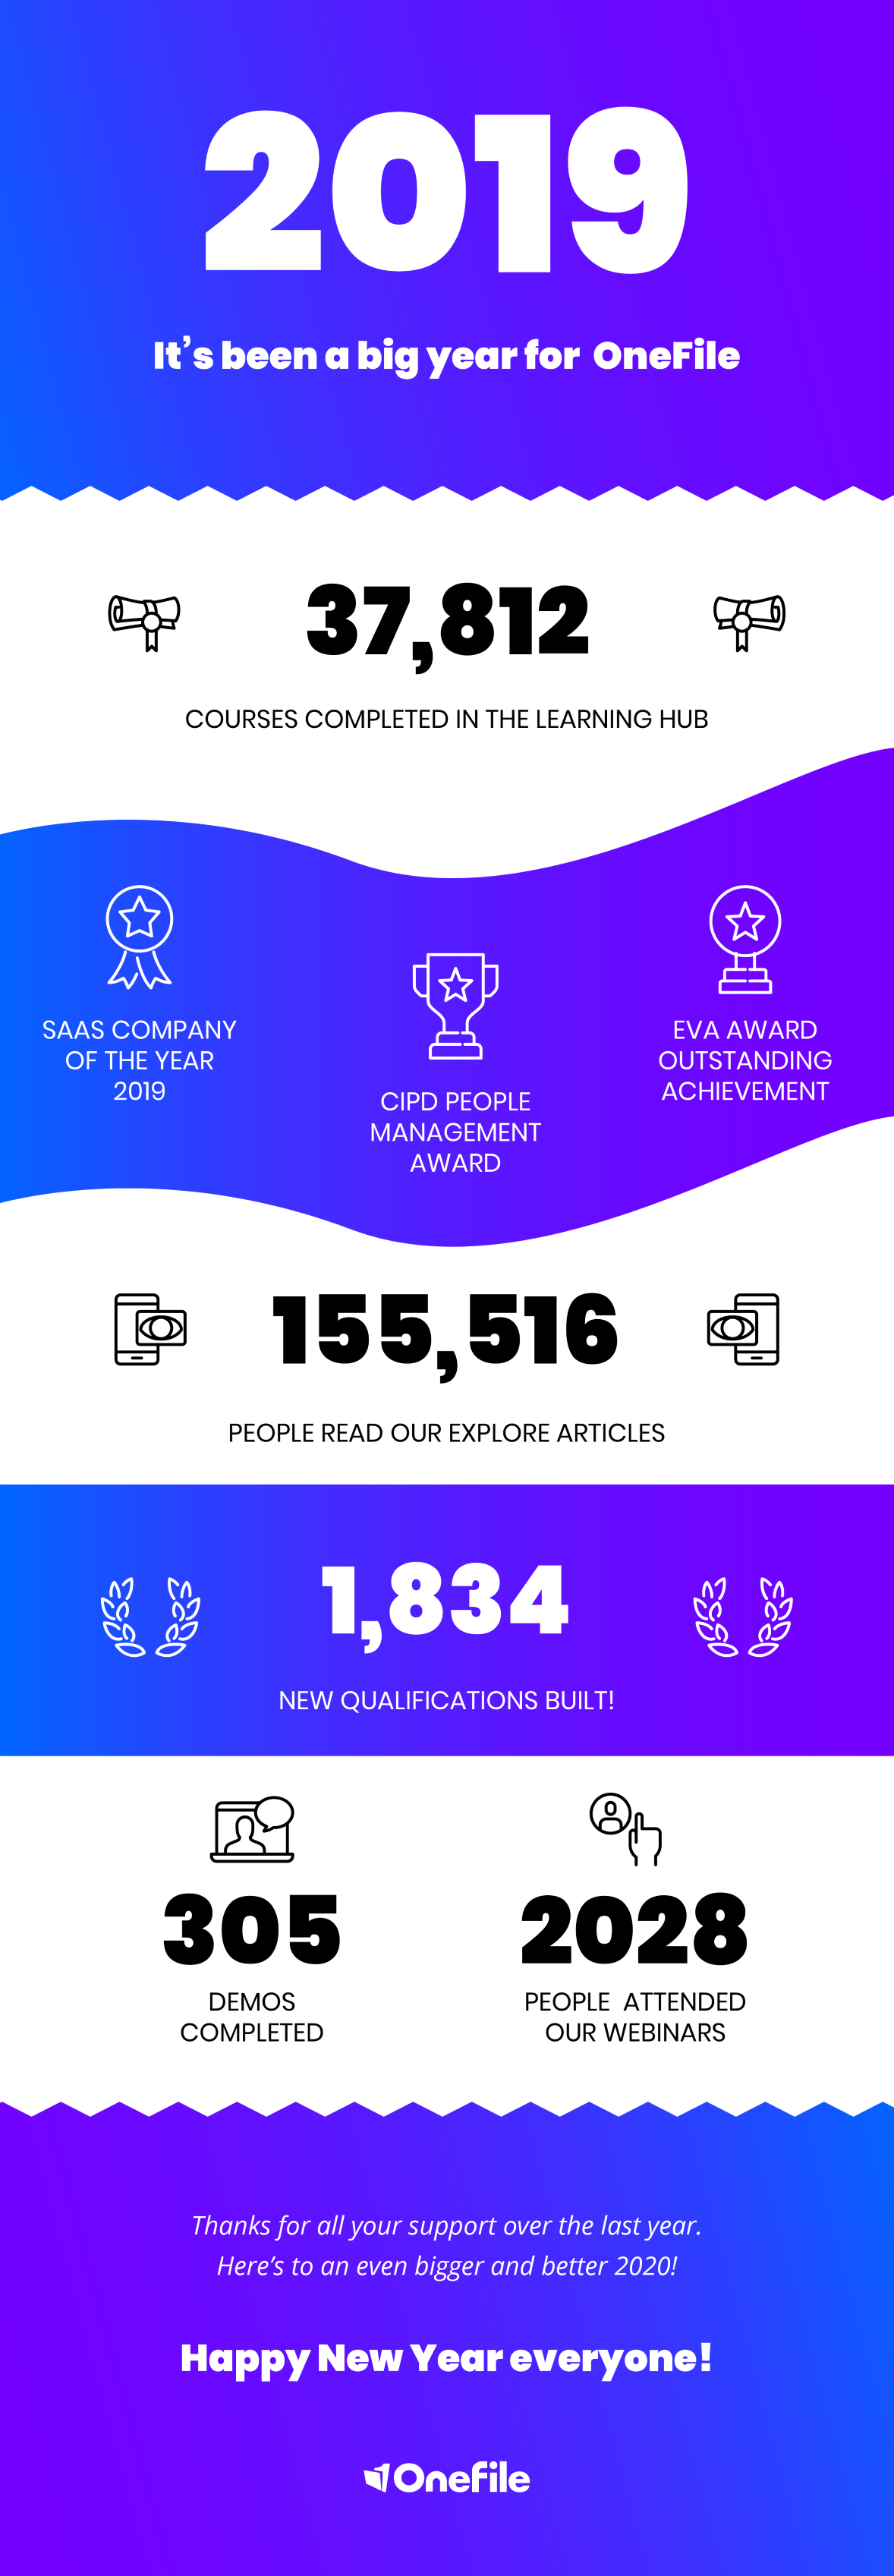 2019 in numbers at OneFile